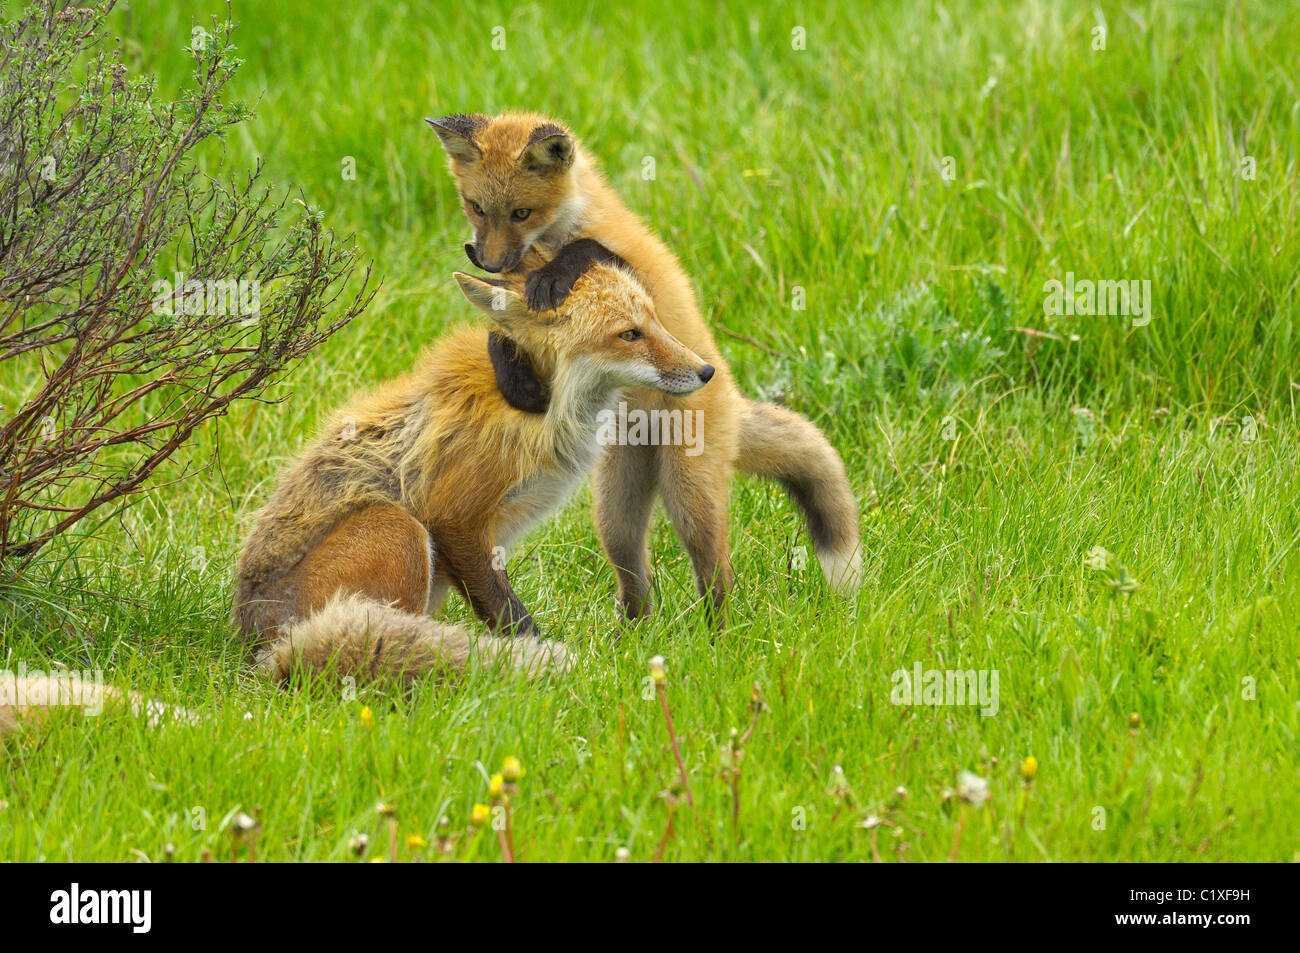 Baby red fox playfully attacks mother fox - Stock Image